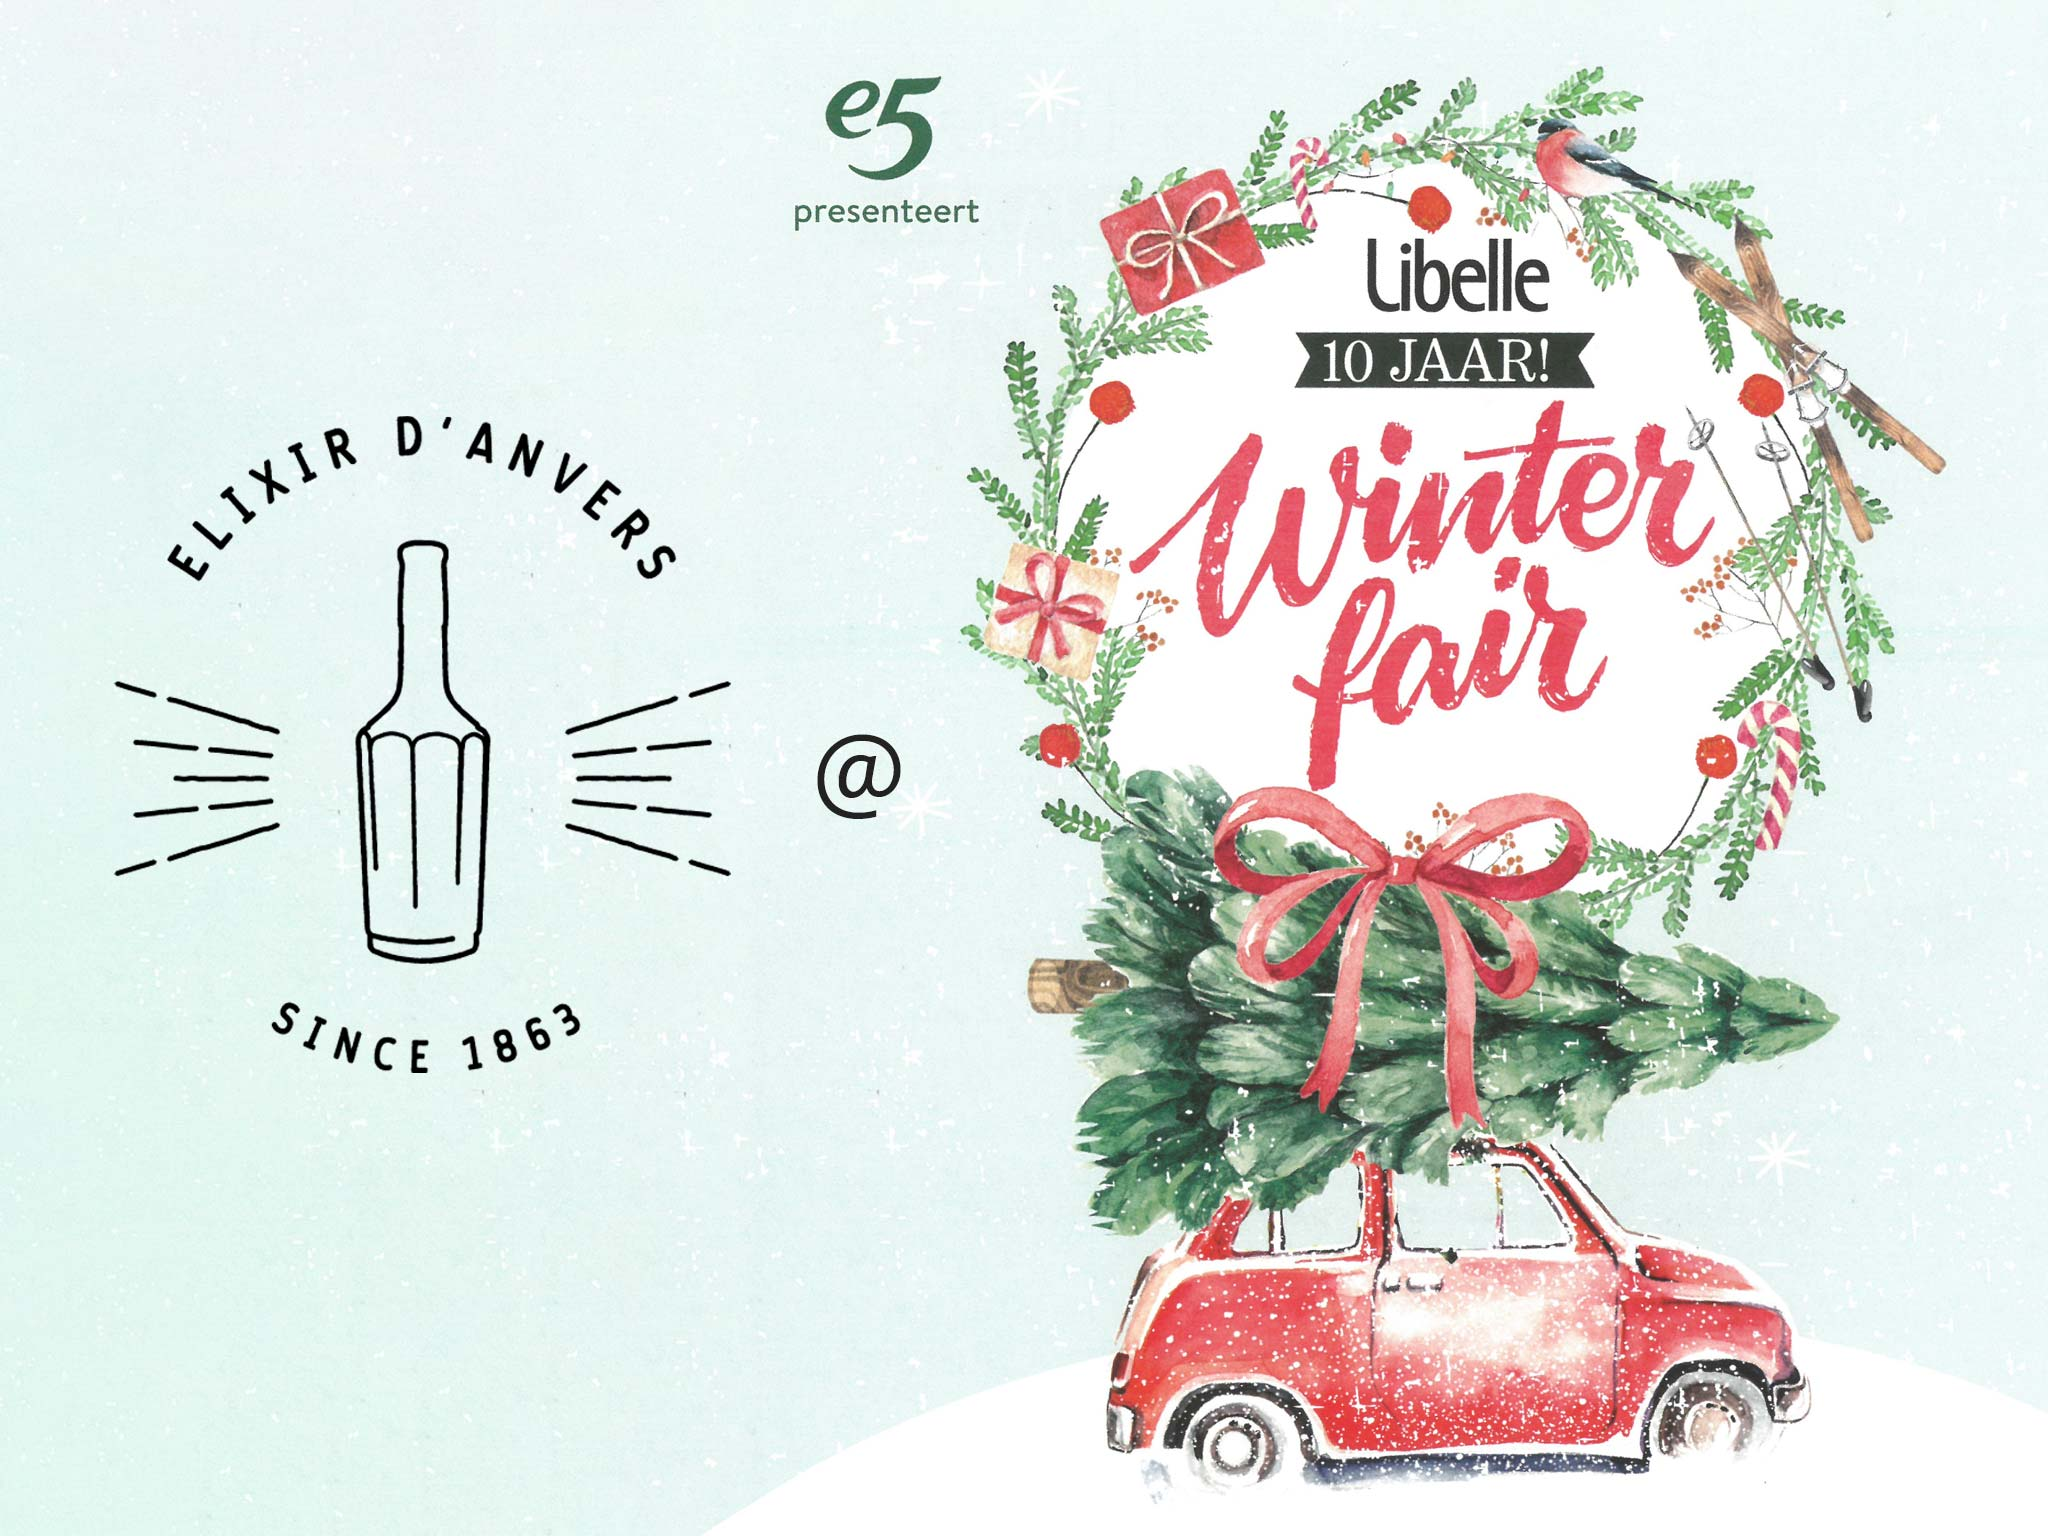 Elixir d'Anvers @ Libelle Winterfair 2019